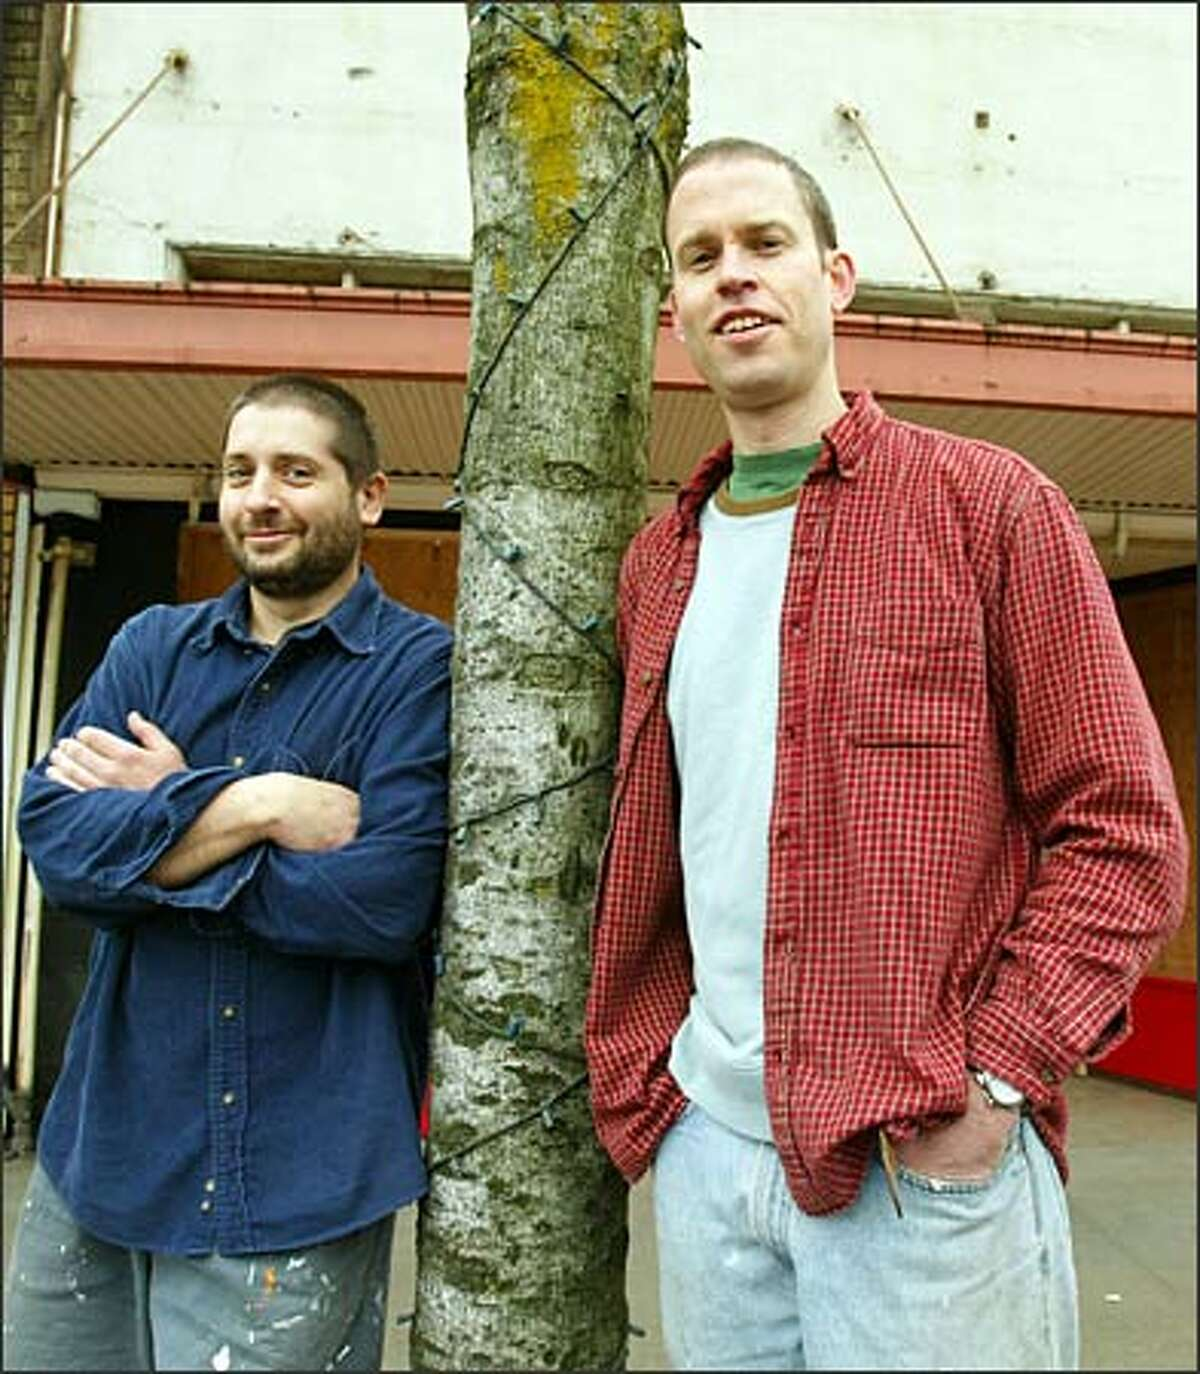 Outstanding Baker: Evan Andres (right),Columbia City Bakery, Seattle